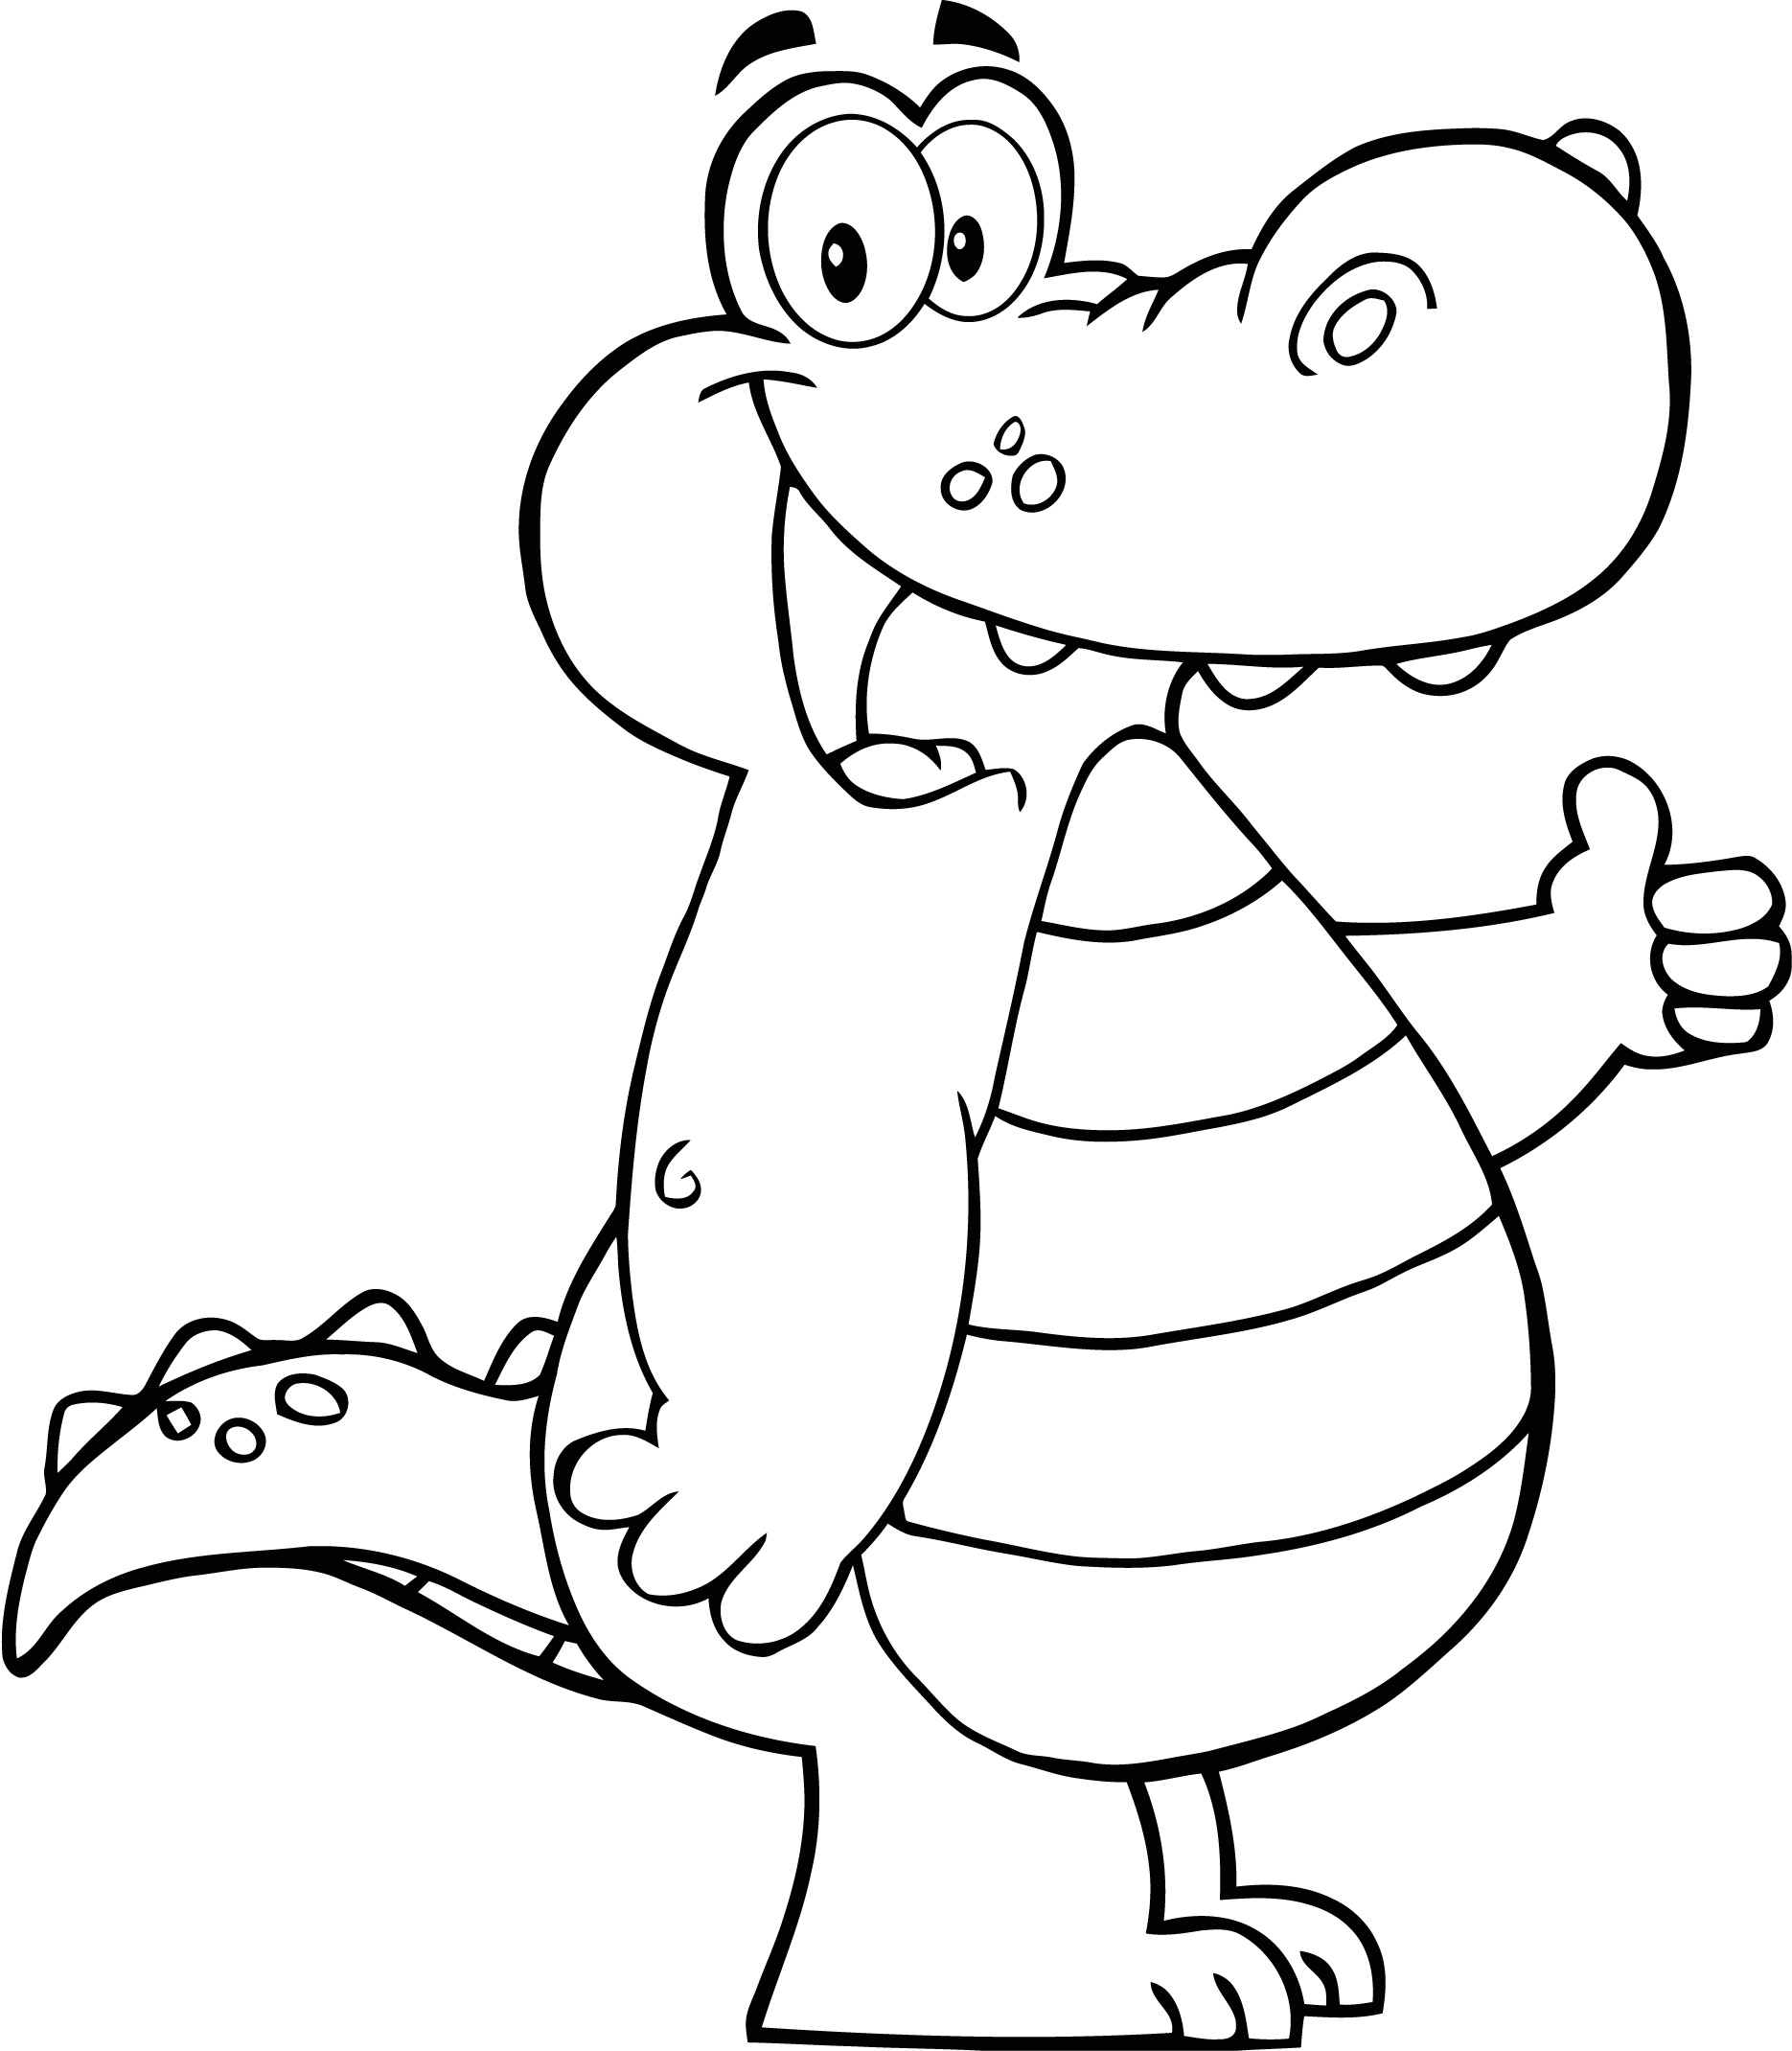 Alligator Coloring Pages at GetDrawings.com | Free for ...